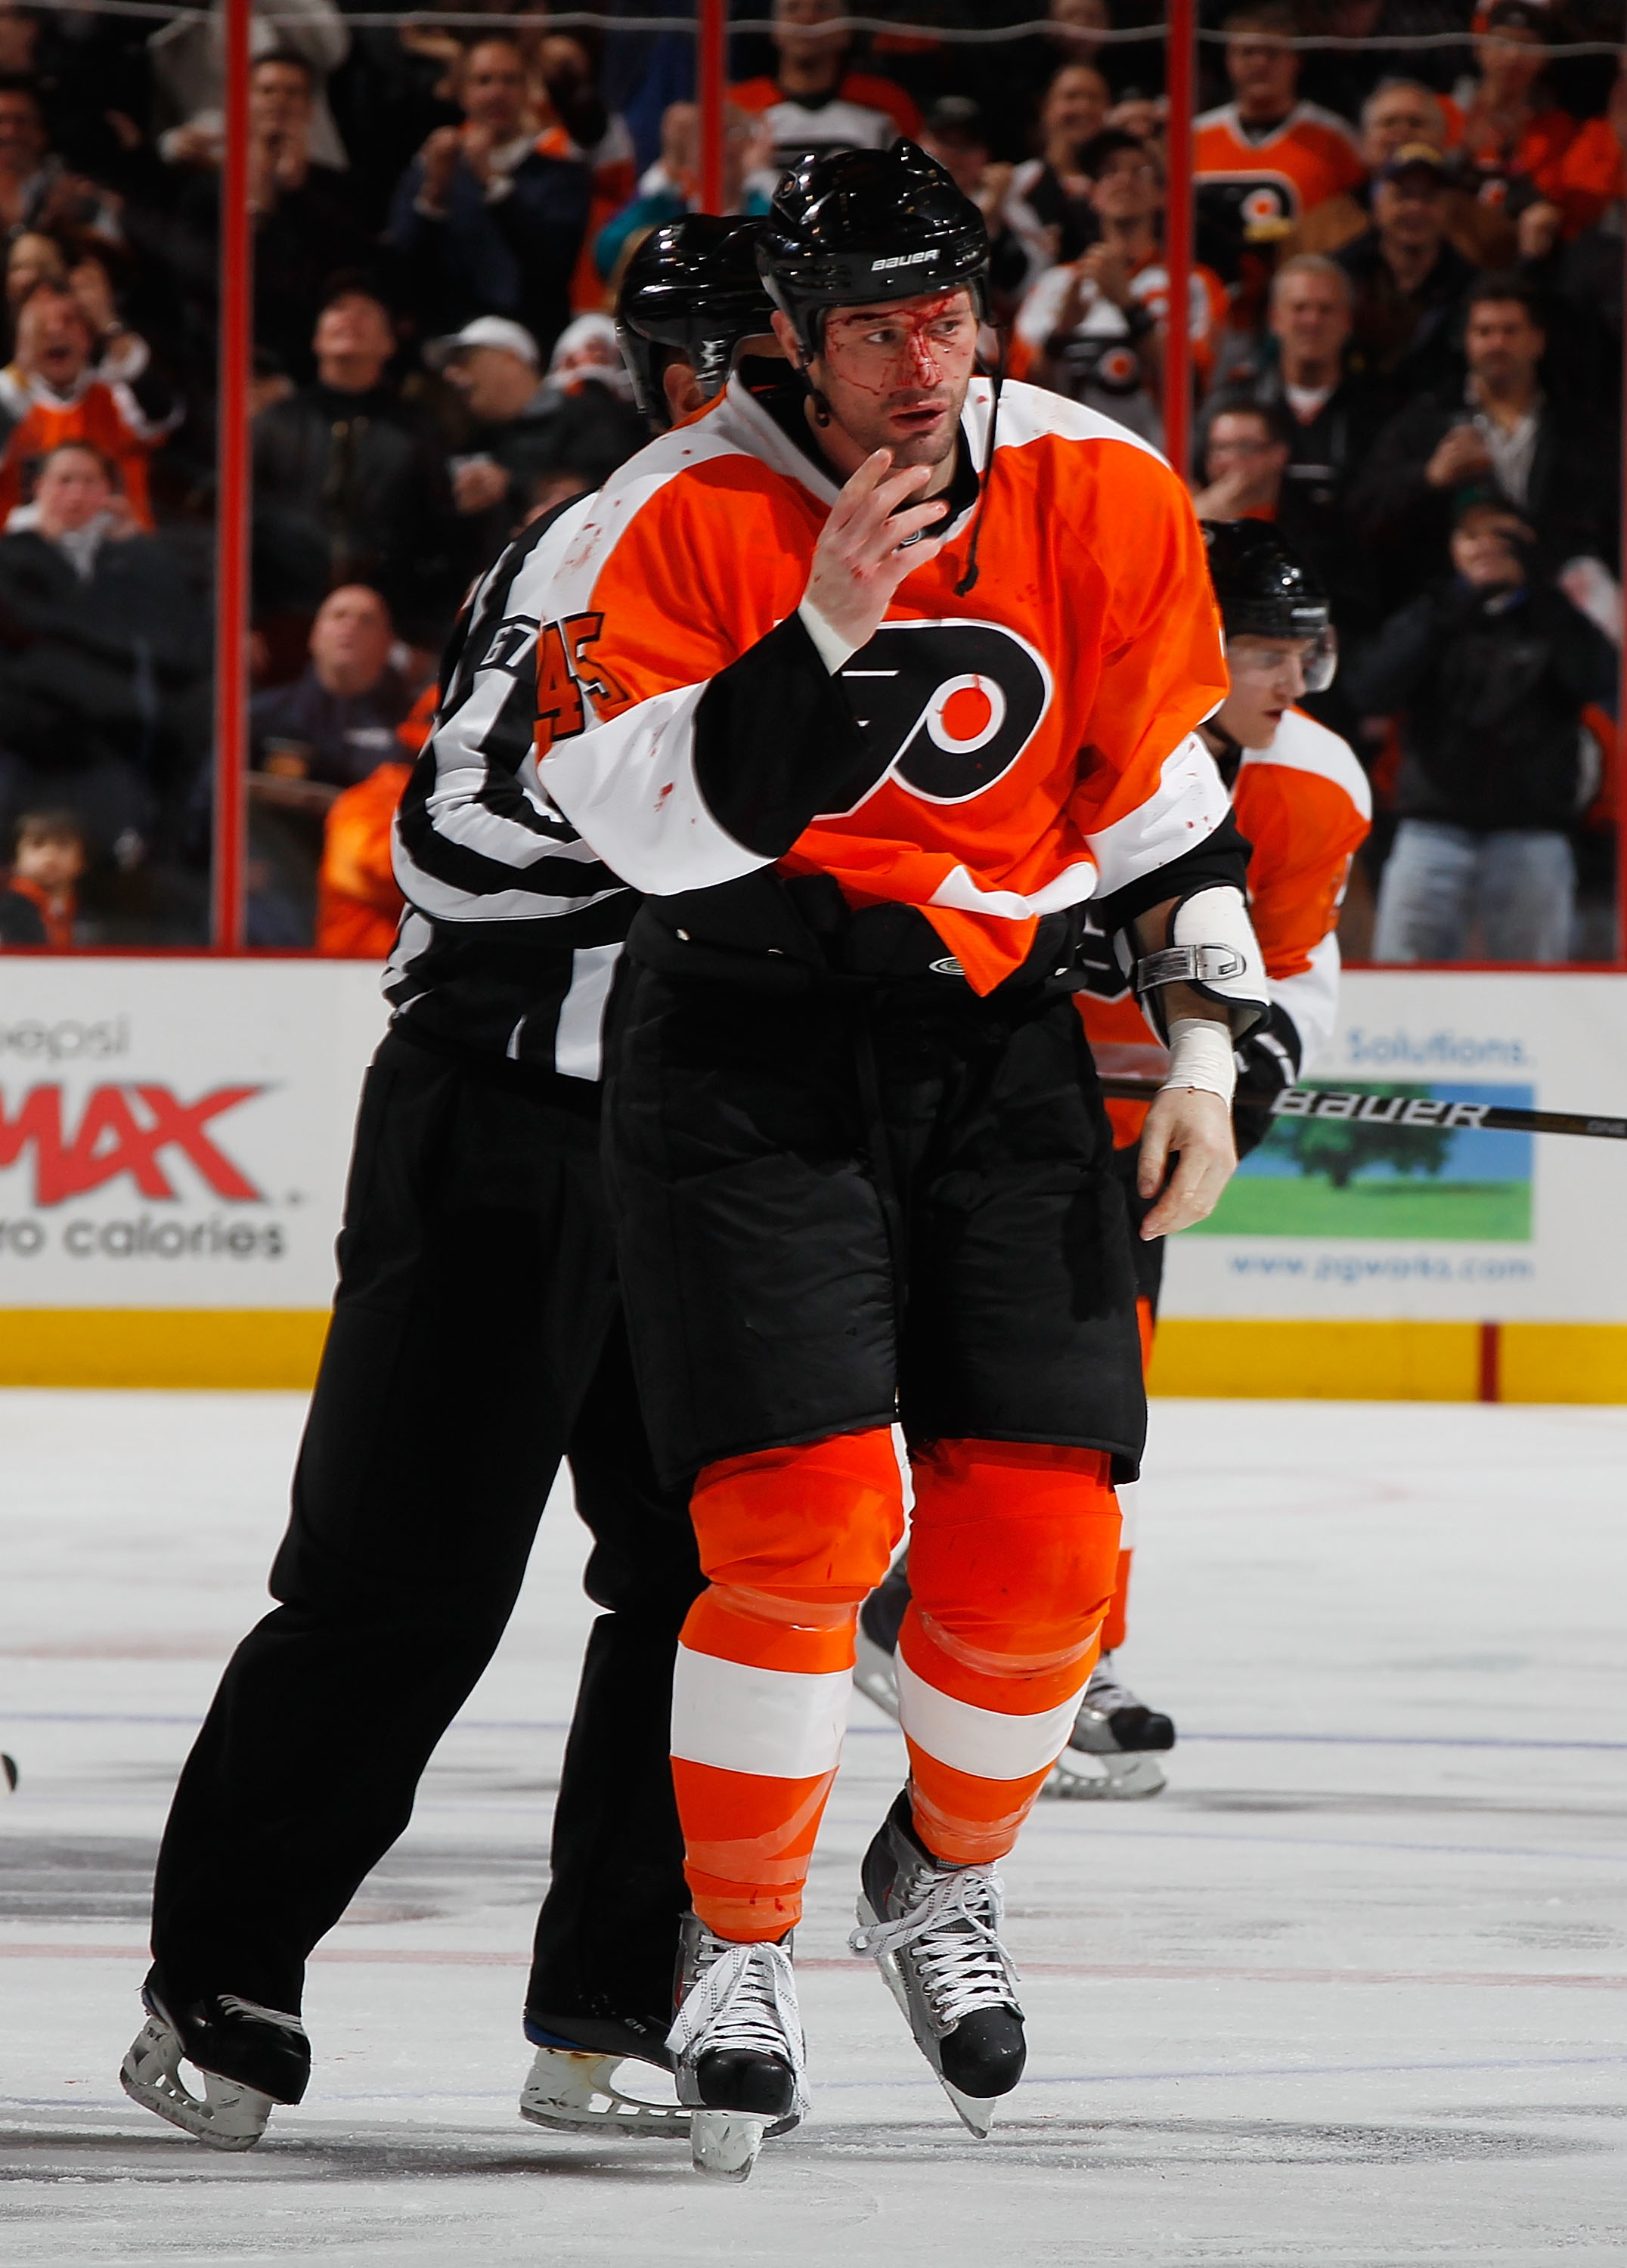 PHILADELPHIA - FEBRUARY 22:  Jody Shelley #45 of the Philadelphia Flyers is escorted off the ice after fighting Nolan Yonkman (not pictured) of the Phoenix Coyotes during the second period on February 22, 2011 at the Wells Fargo Center in Philadelphia, Pe